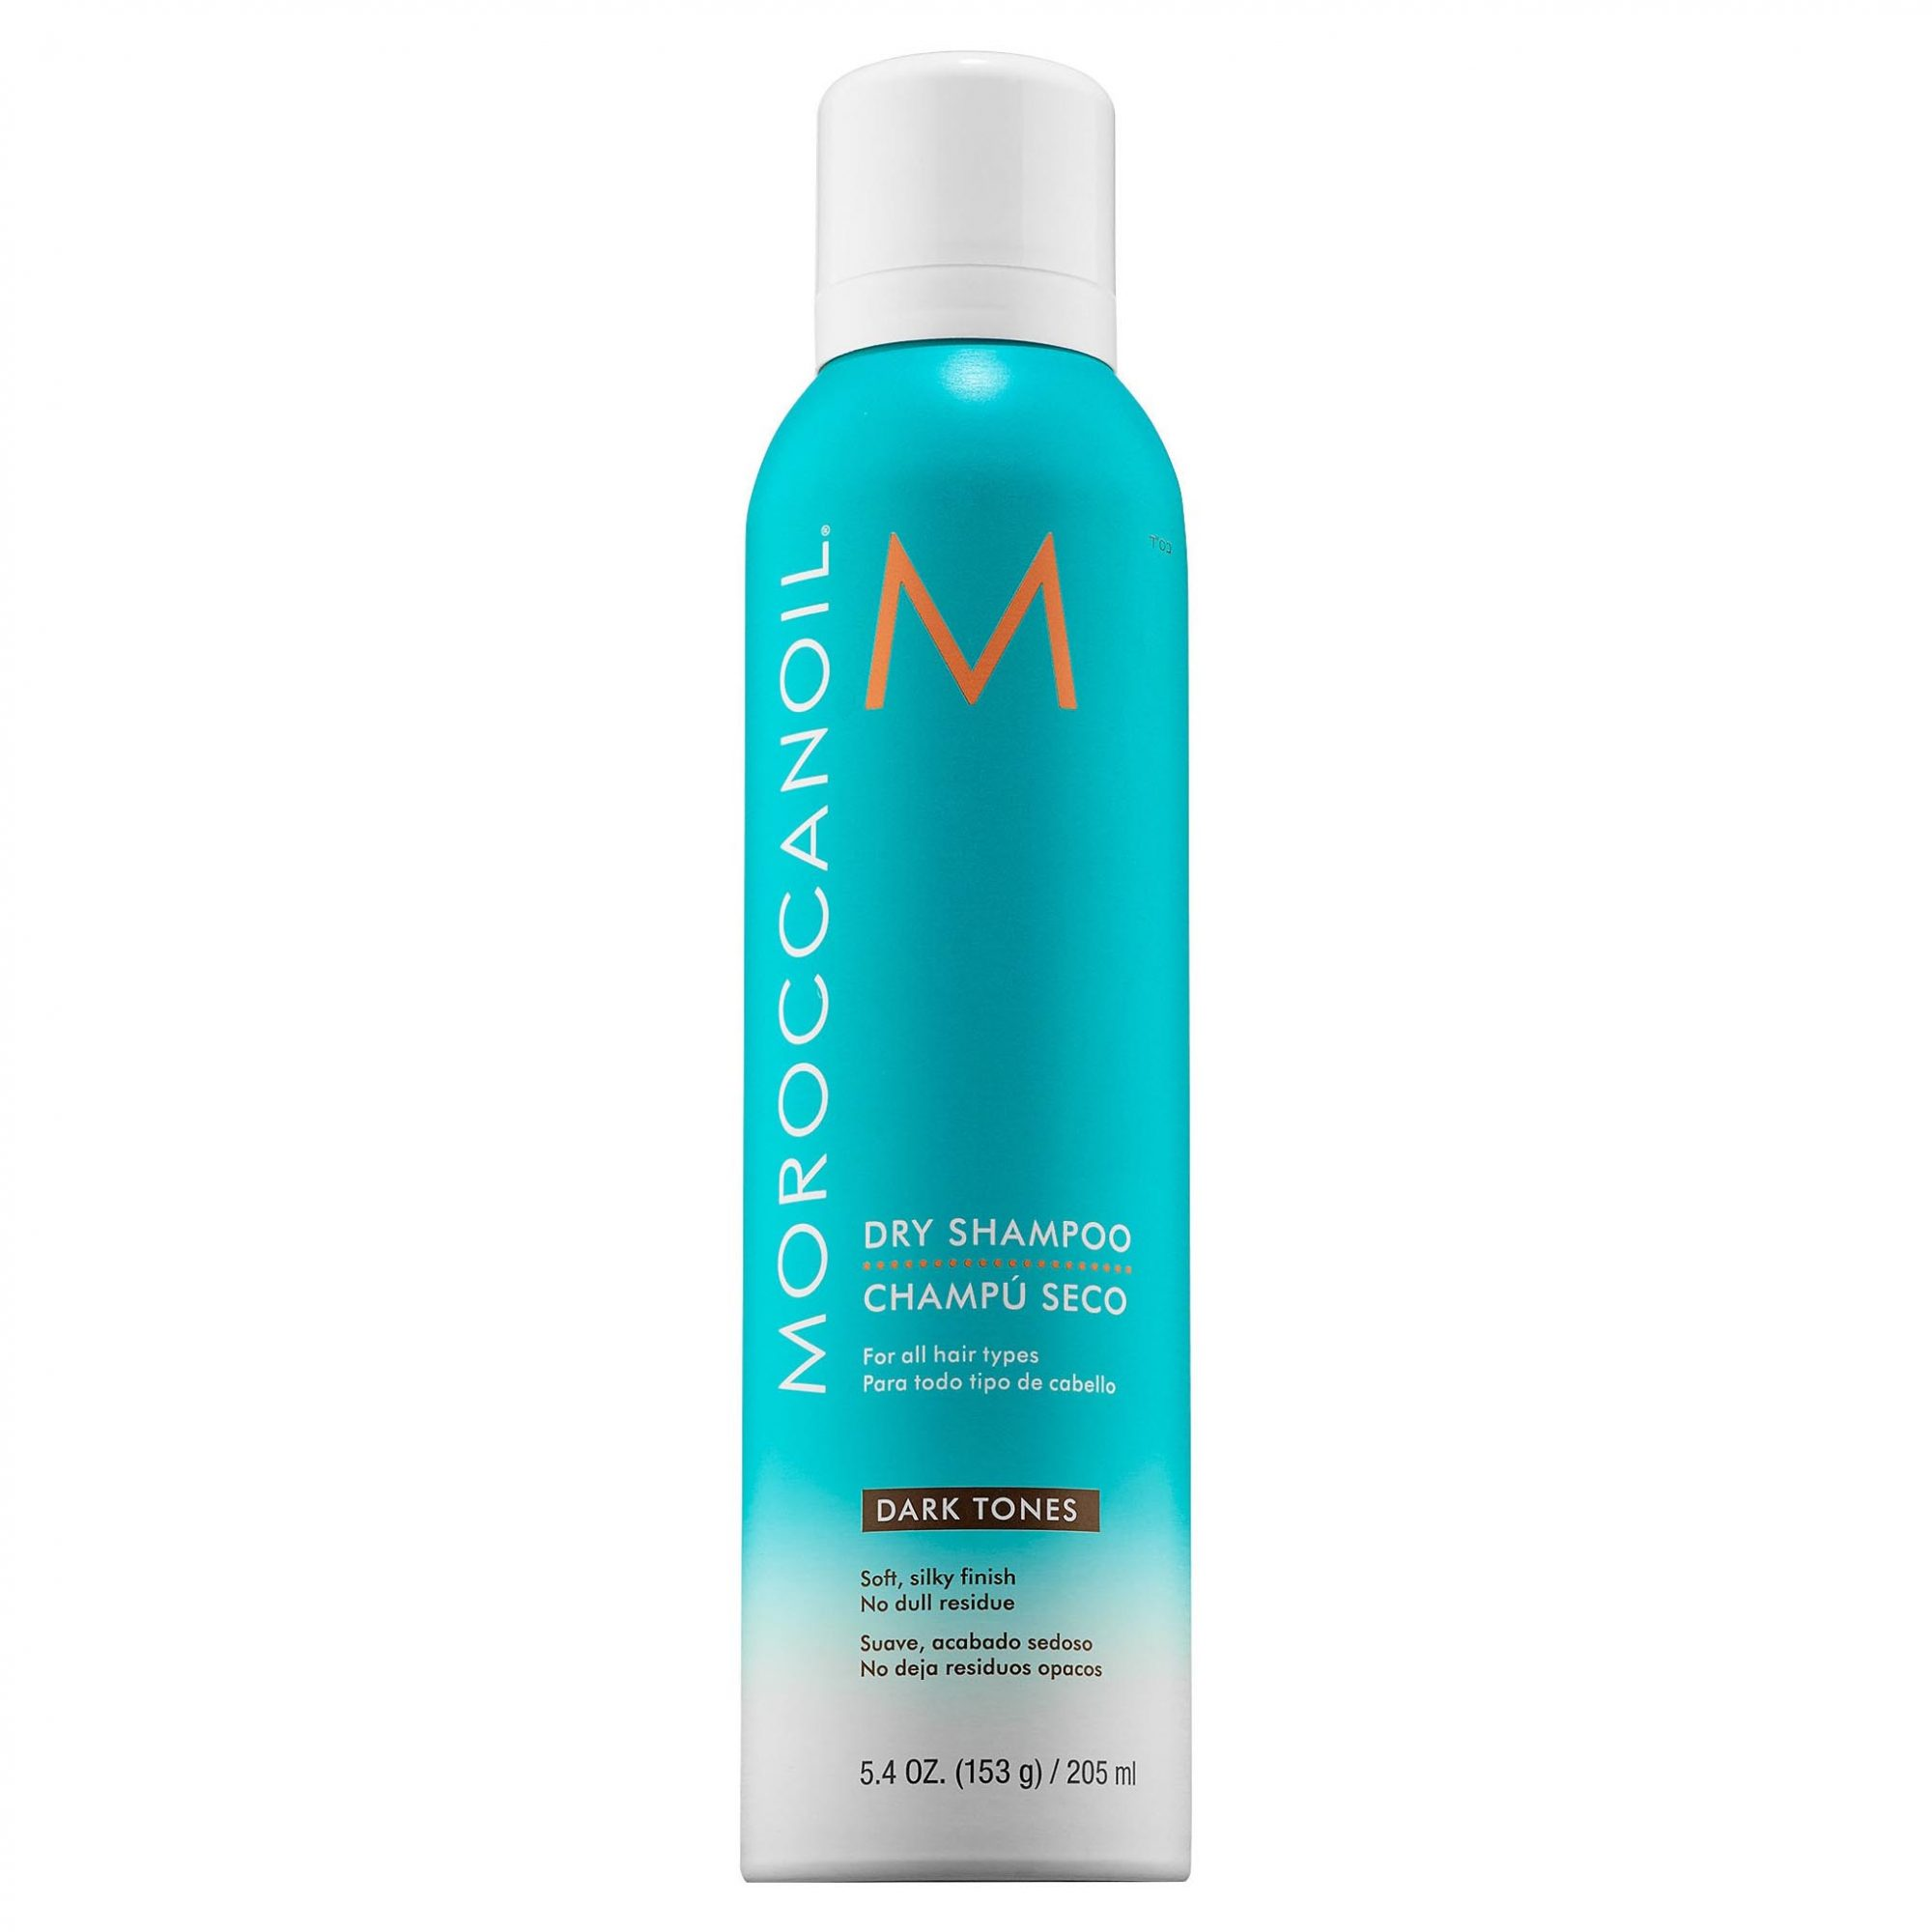 Non-Drying Dry Shampoo: Moroccanoil Dry Shampoo for Dark Tones